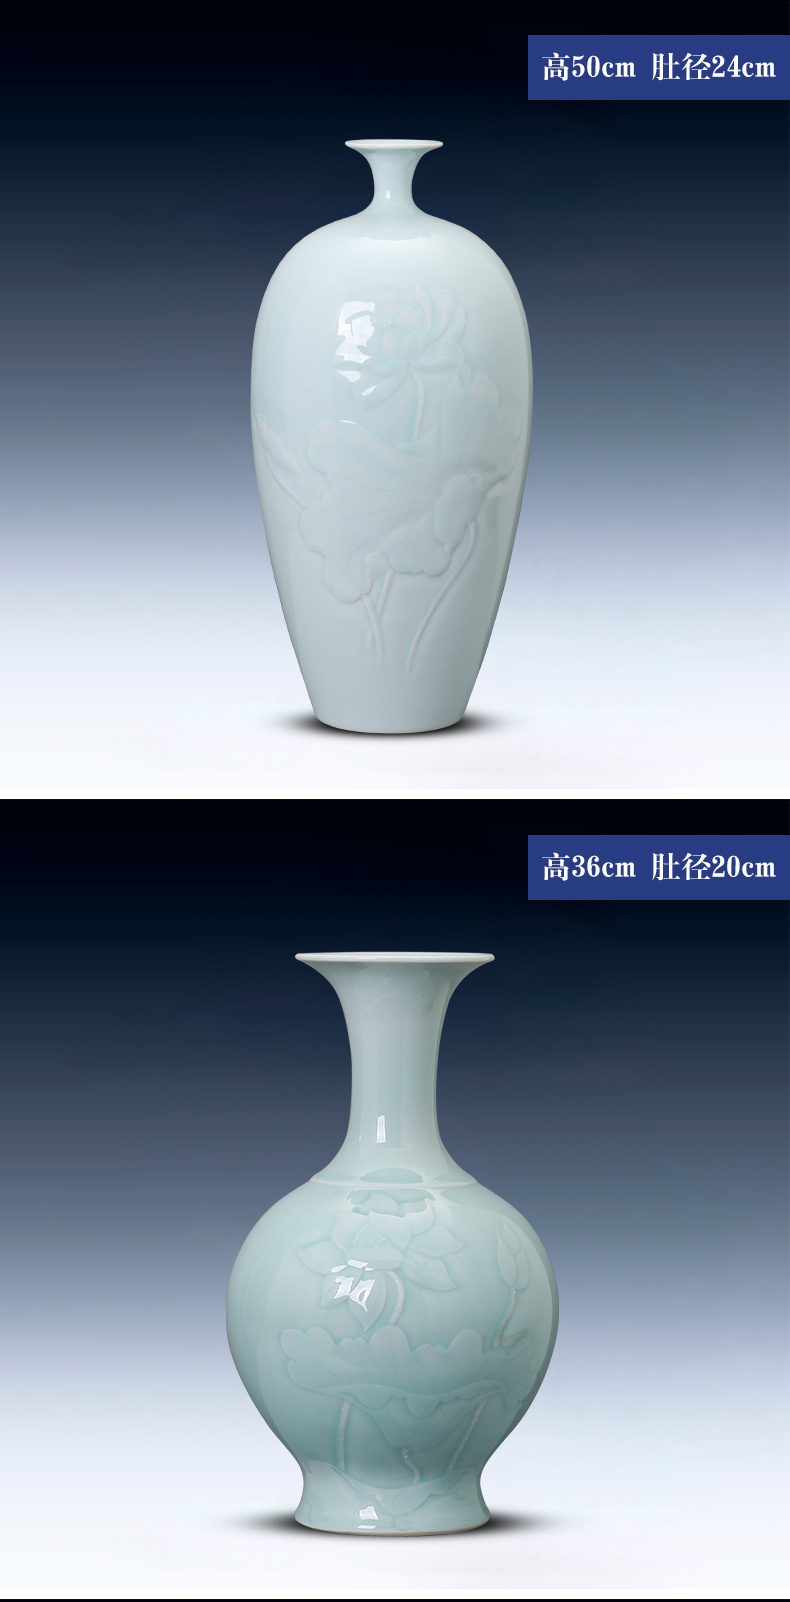 Clearance!!!!!! A limited number of ceramic vases, flower arranging clearance